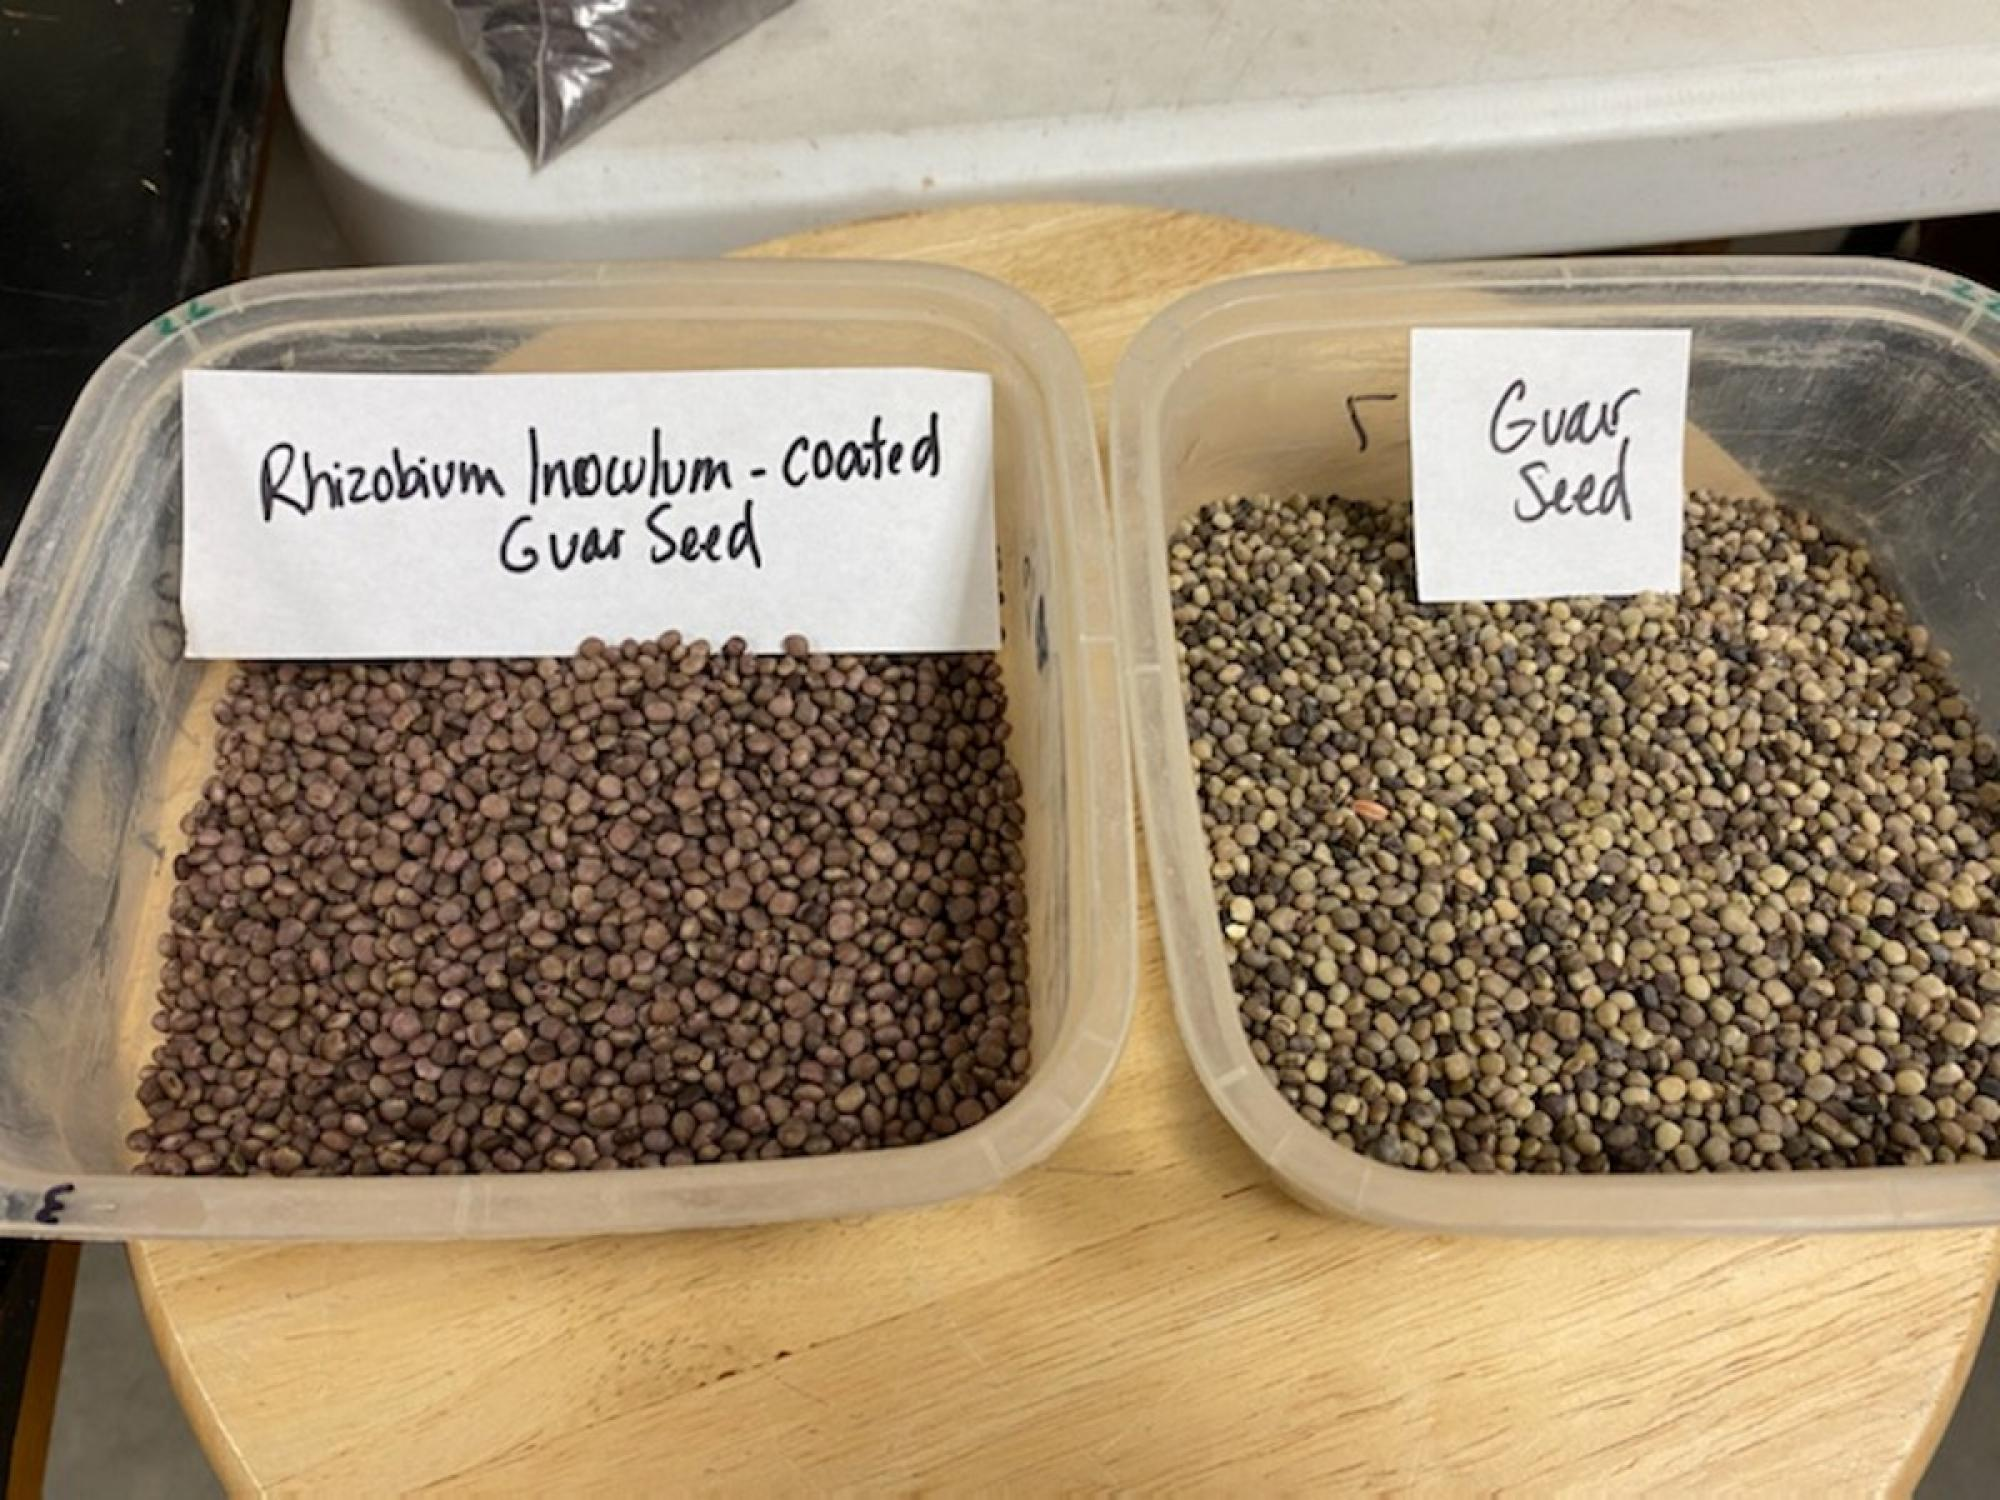 Untreated guar seeds (right) and inoculated guar seeds (left)